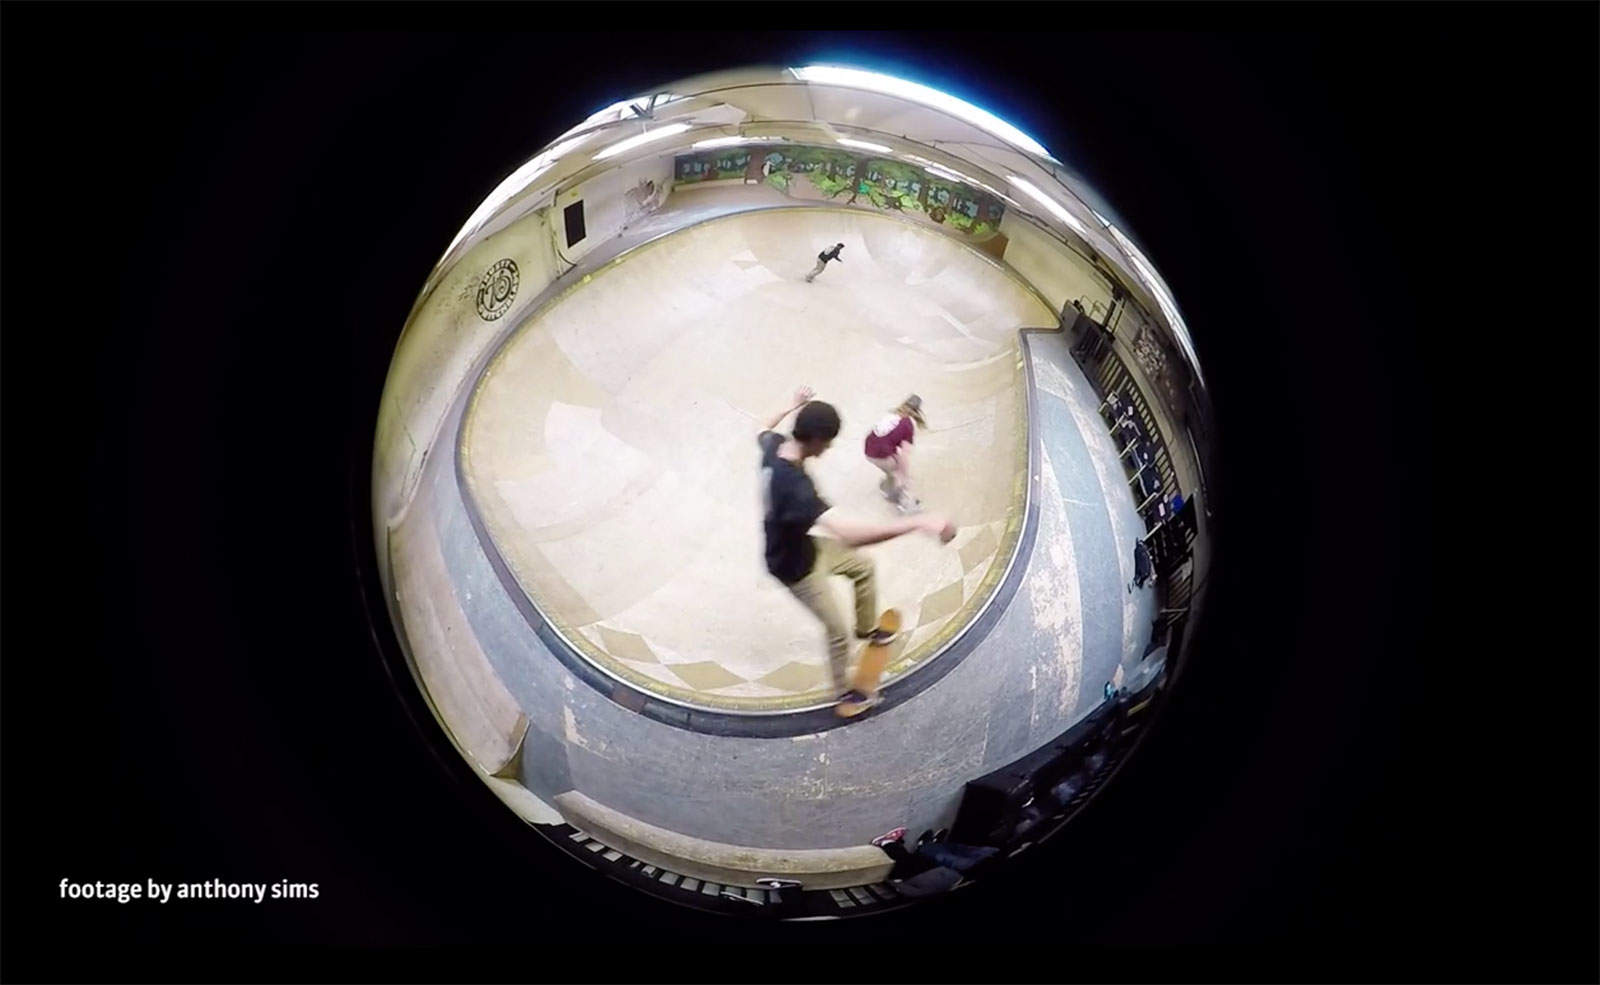 How's that for perspective? Lensbaby gives your GoPro camera a new view.